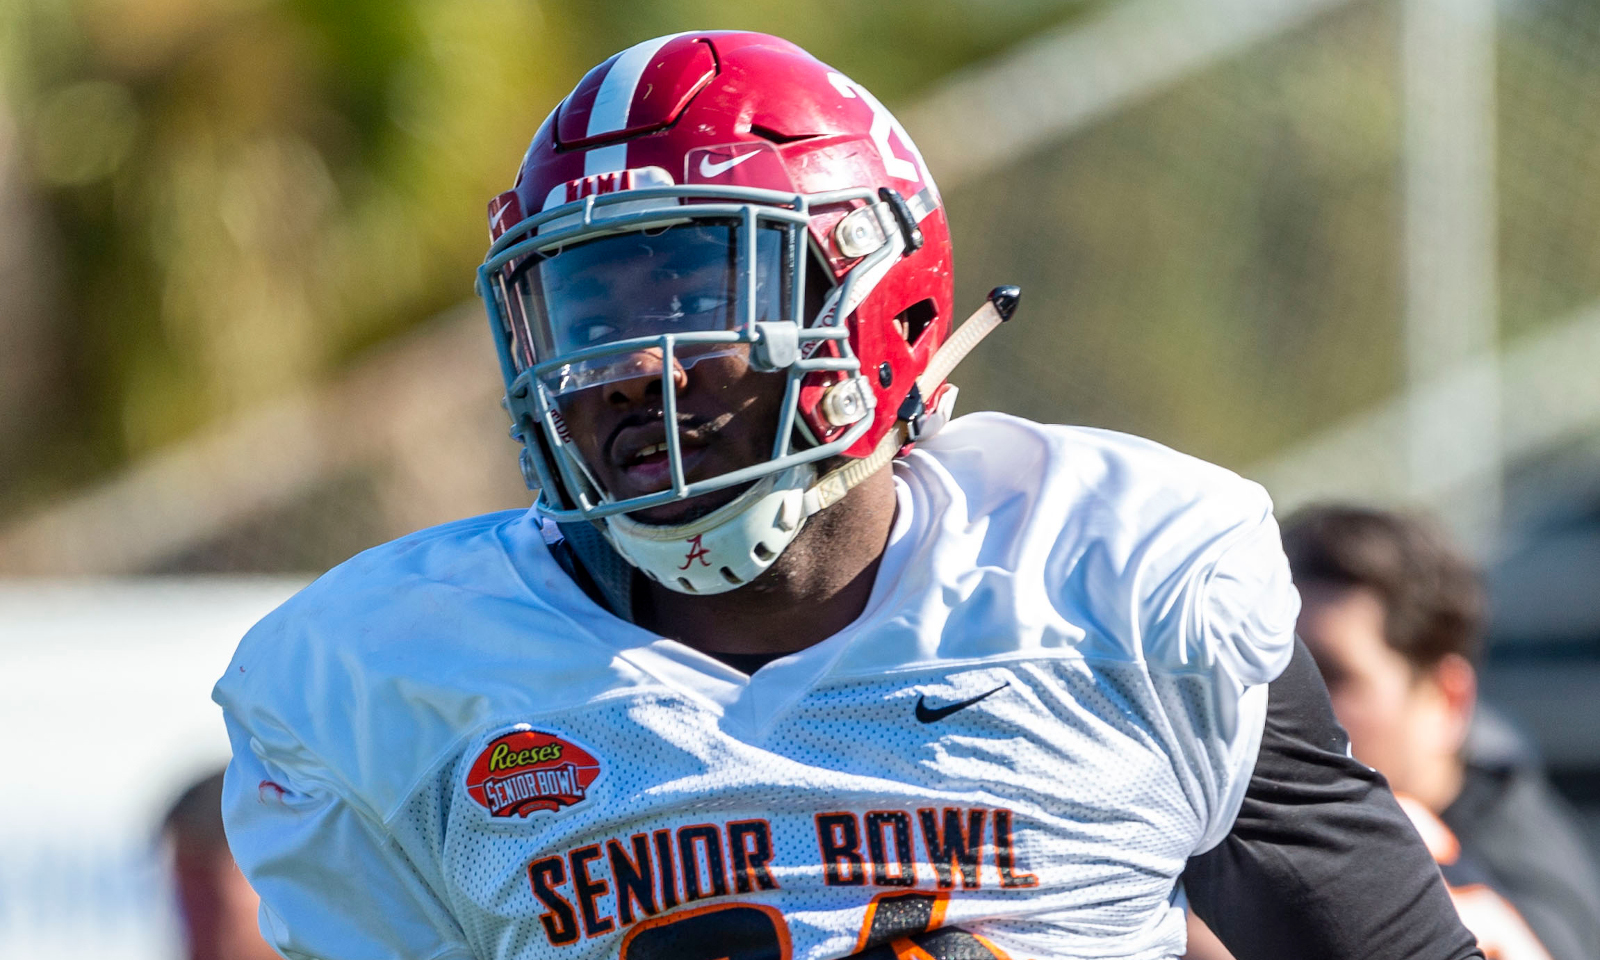 Former Tide LB Terrell Lewis creating attention at Senior Bowl practice